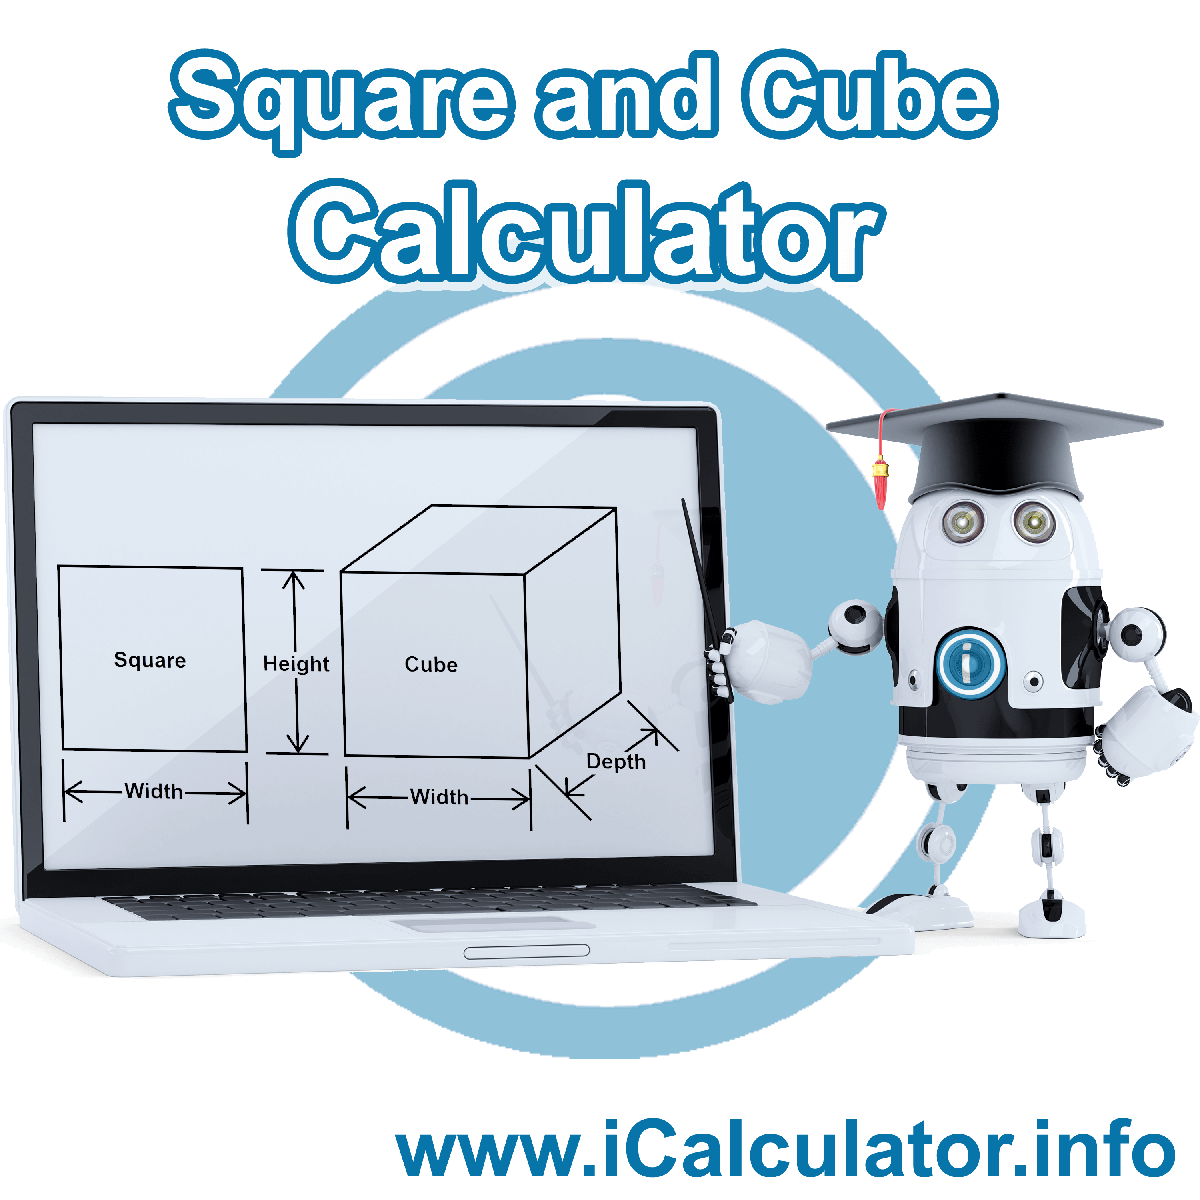 Square and Cube Calculator. This image shows the properties and formula for the Square and Cube Calculator